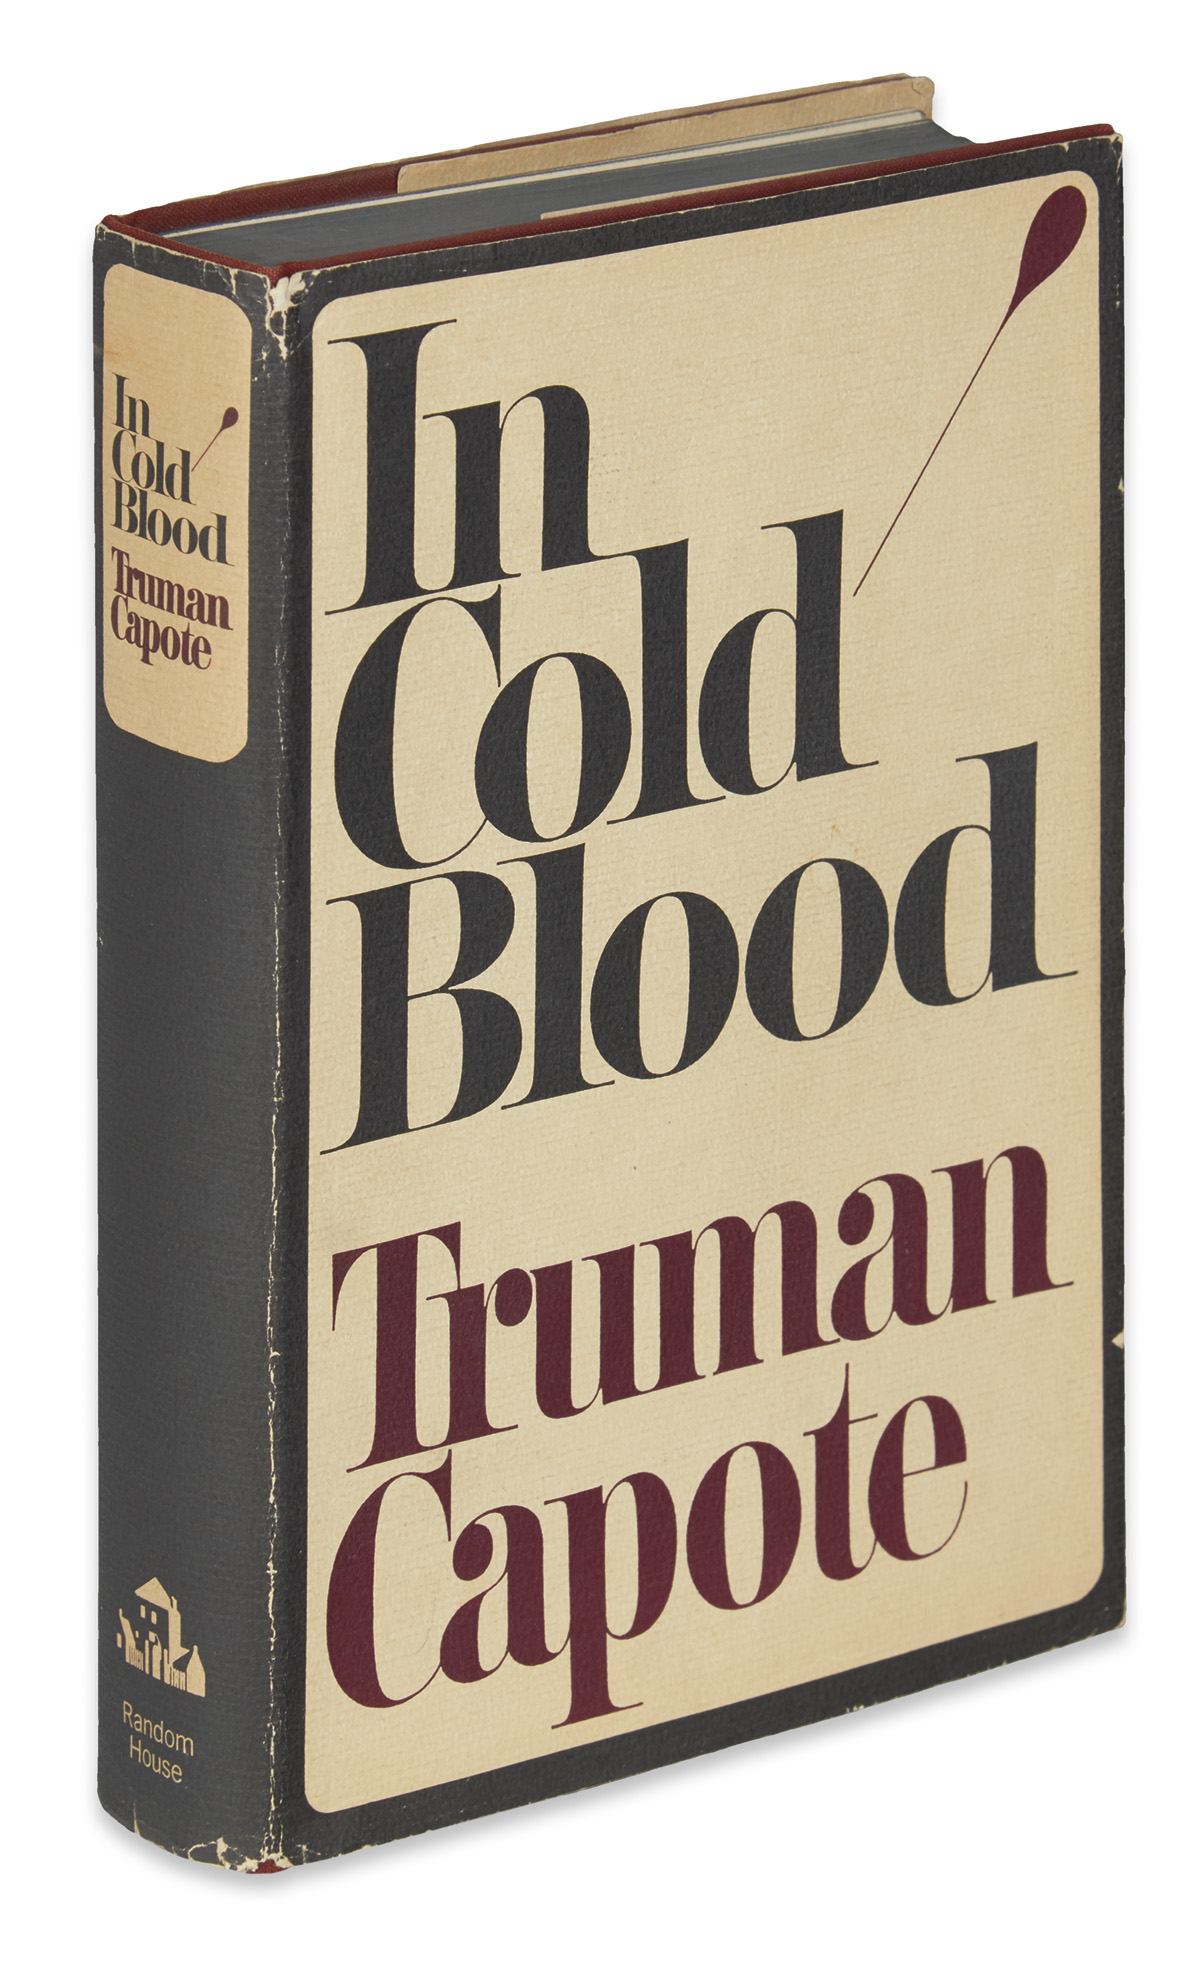 CAPOTE-TRUMAN-In-Cold-Blood